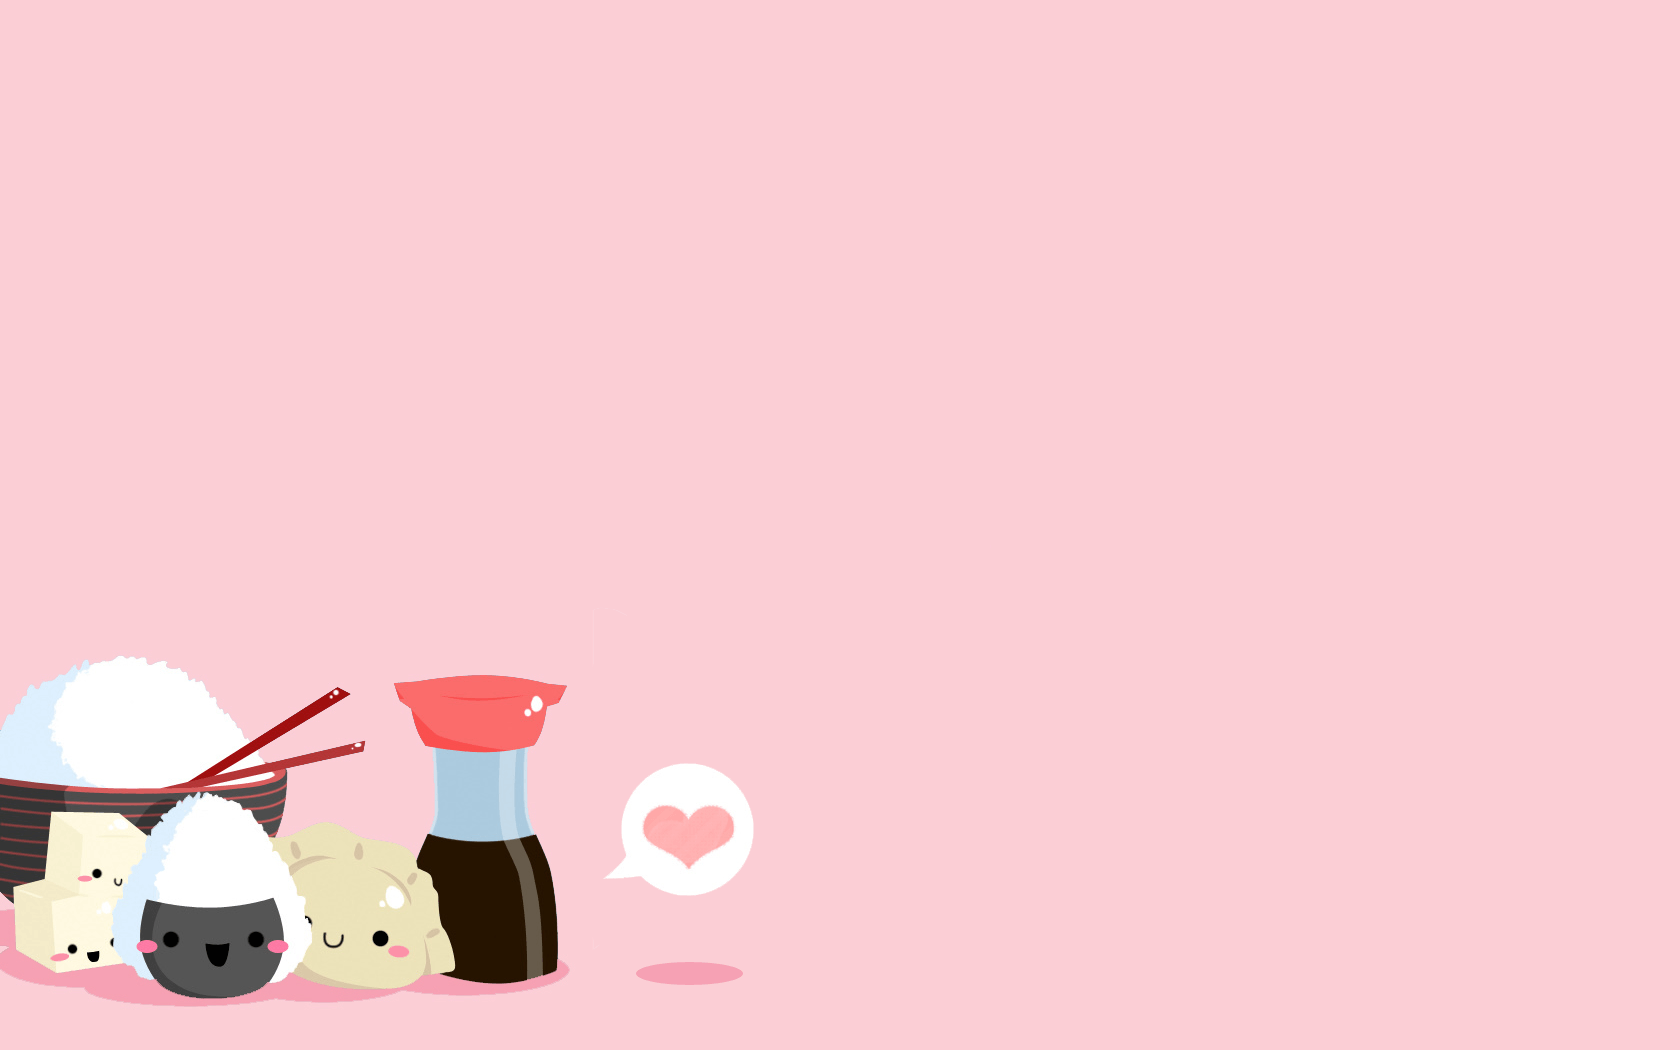 Why You Should Switch To a New Kawaii Desktop Wallpaper